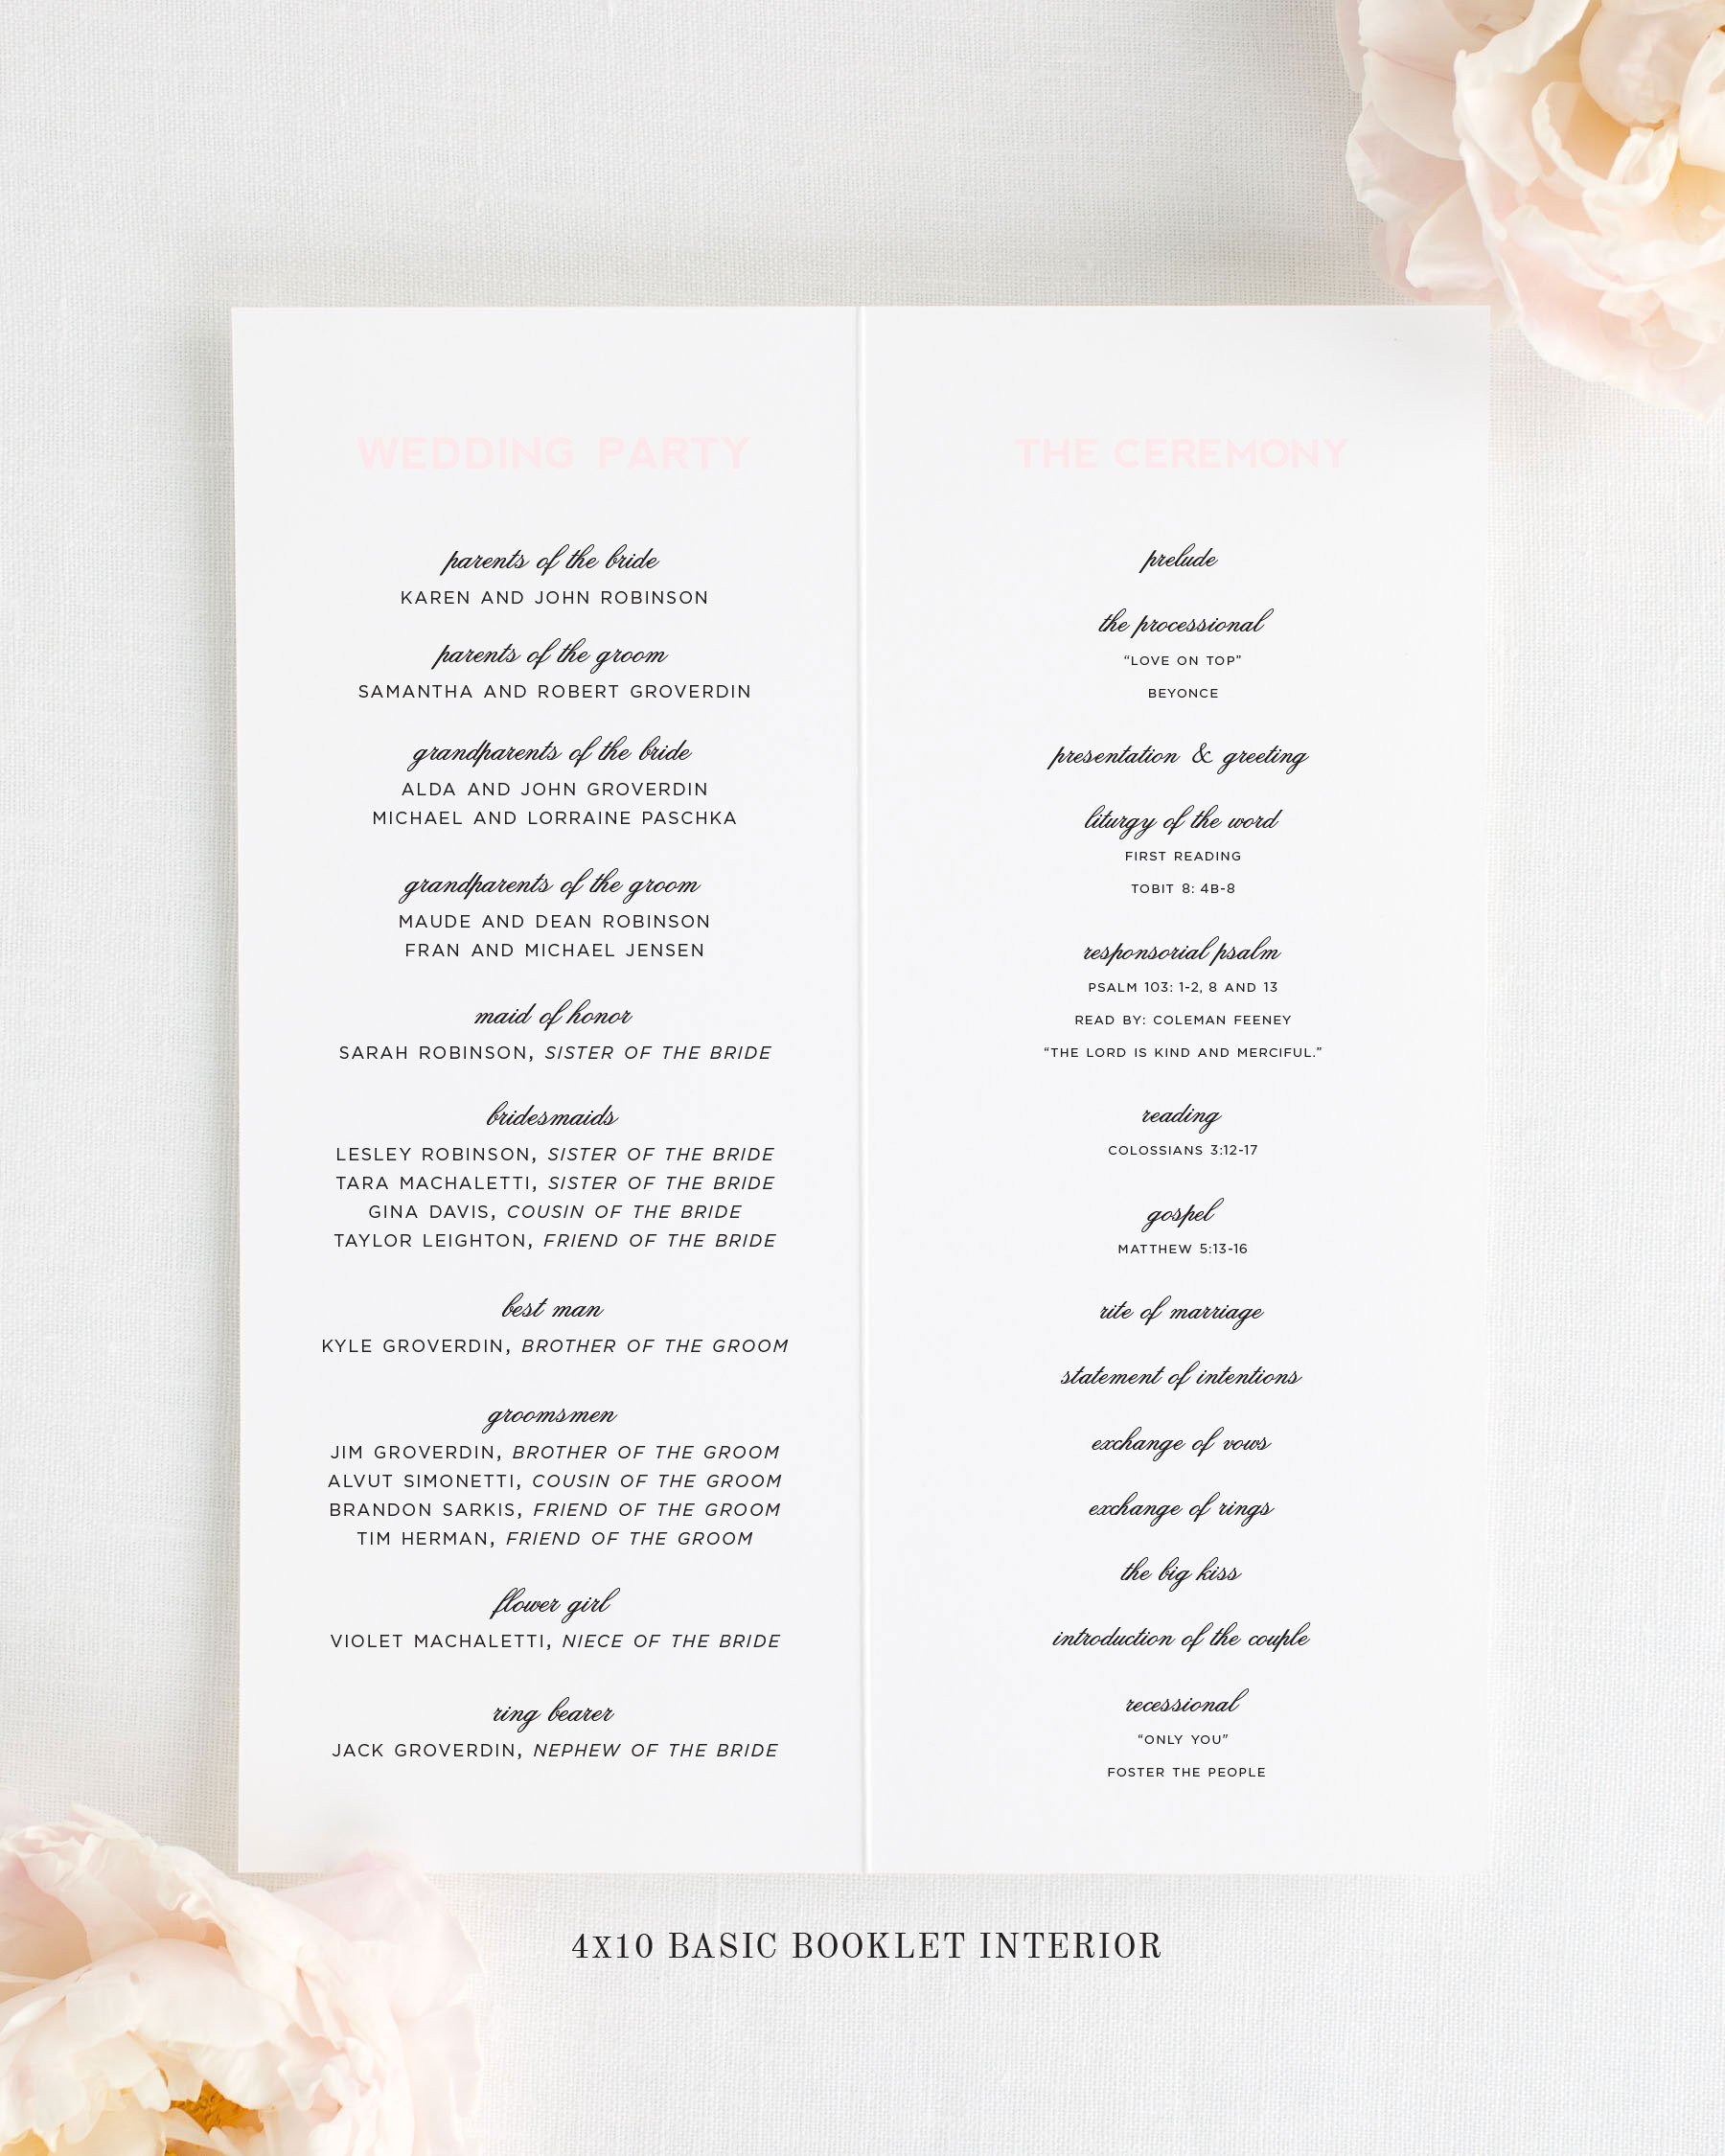 Modern Initials Booklet Wedding Programs - Booklet Wedding Programs ...